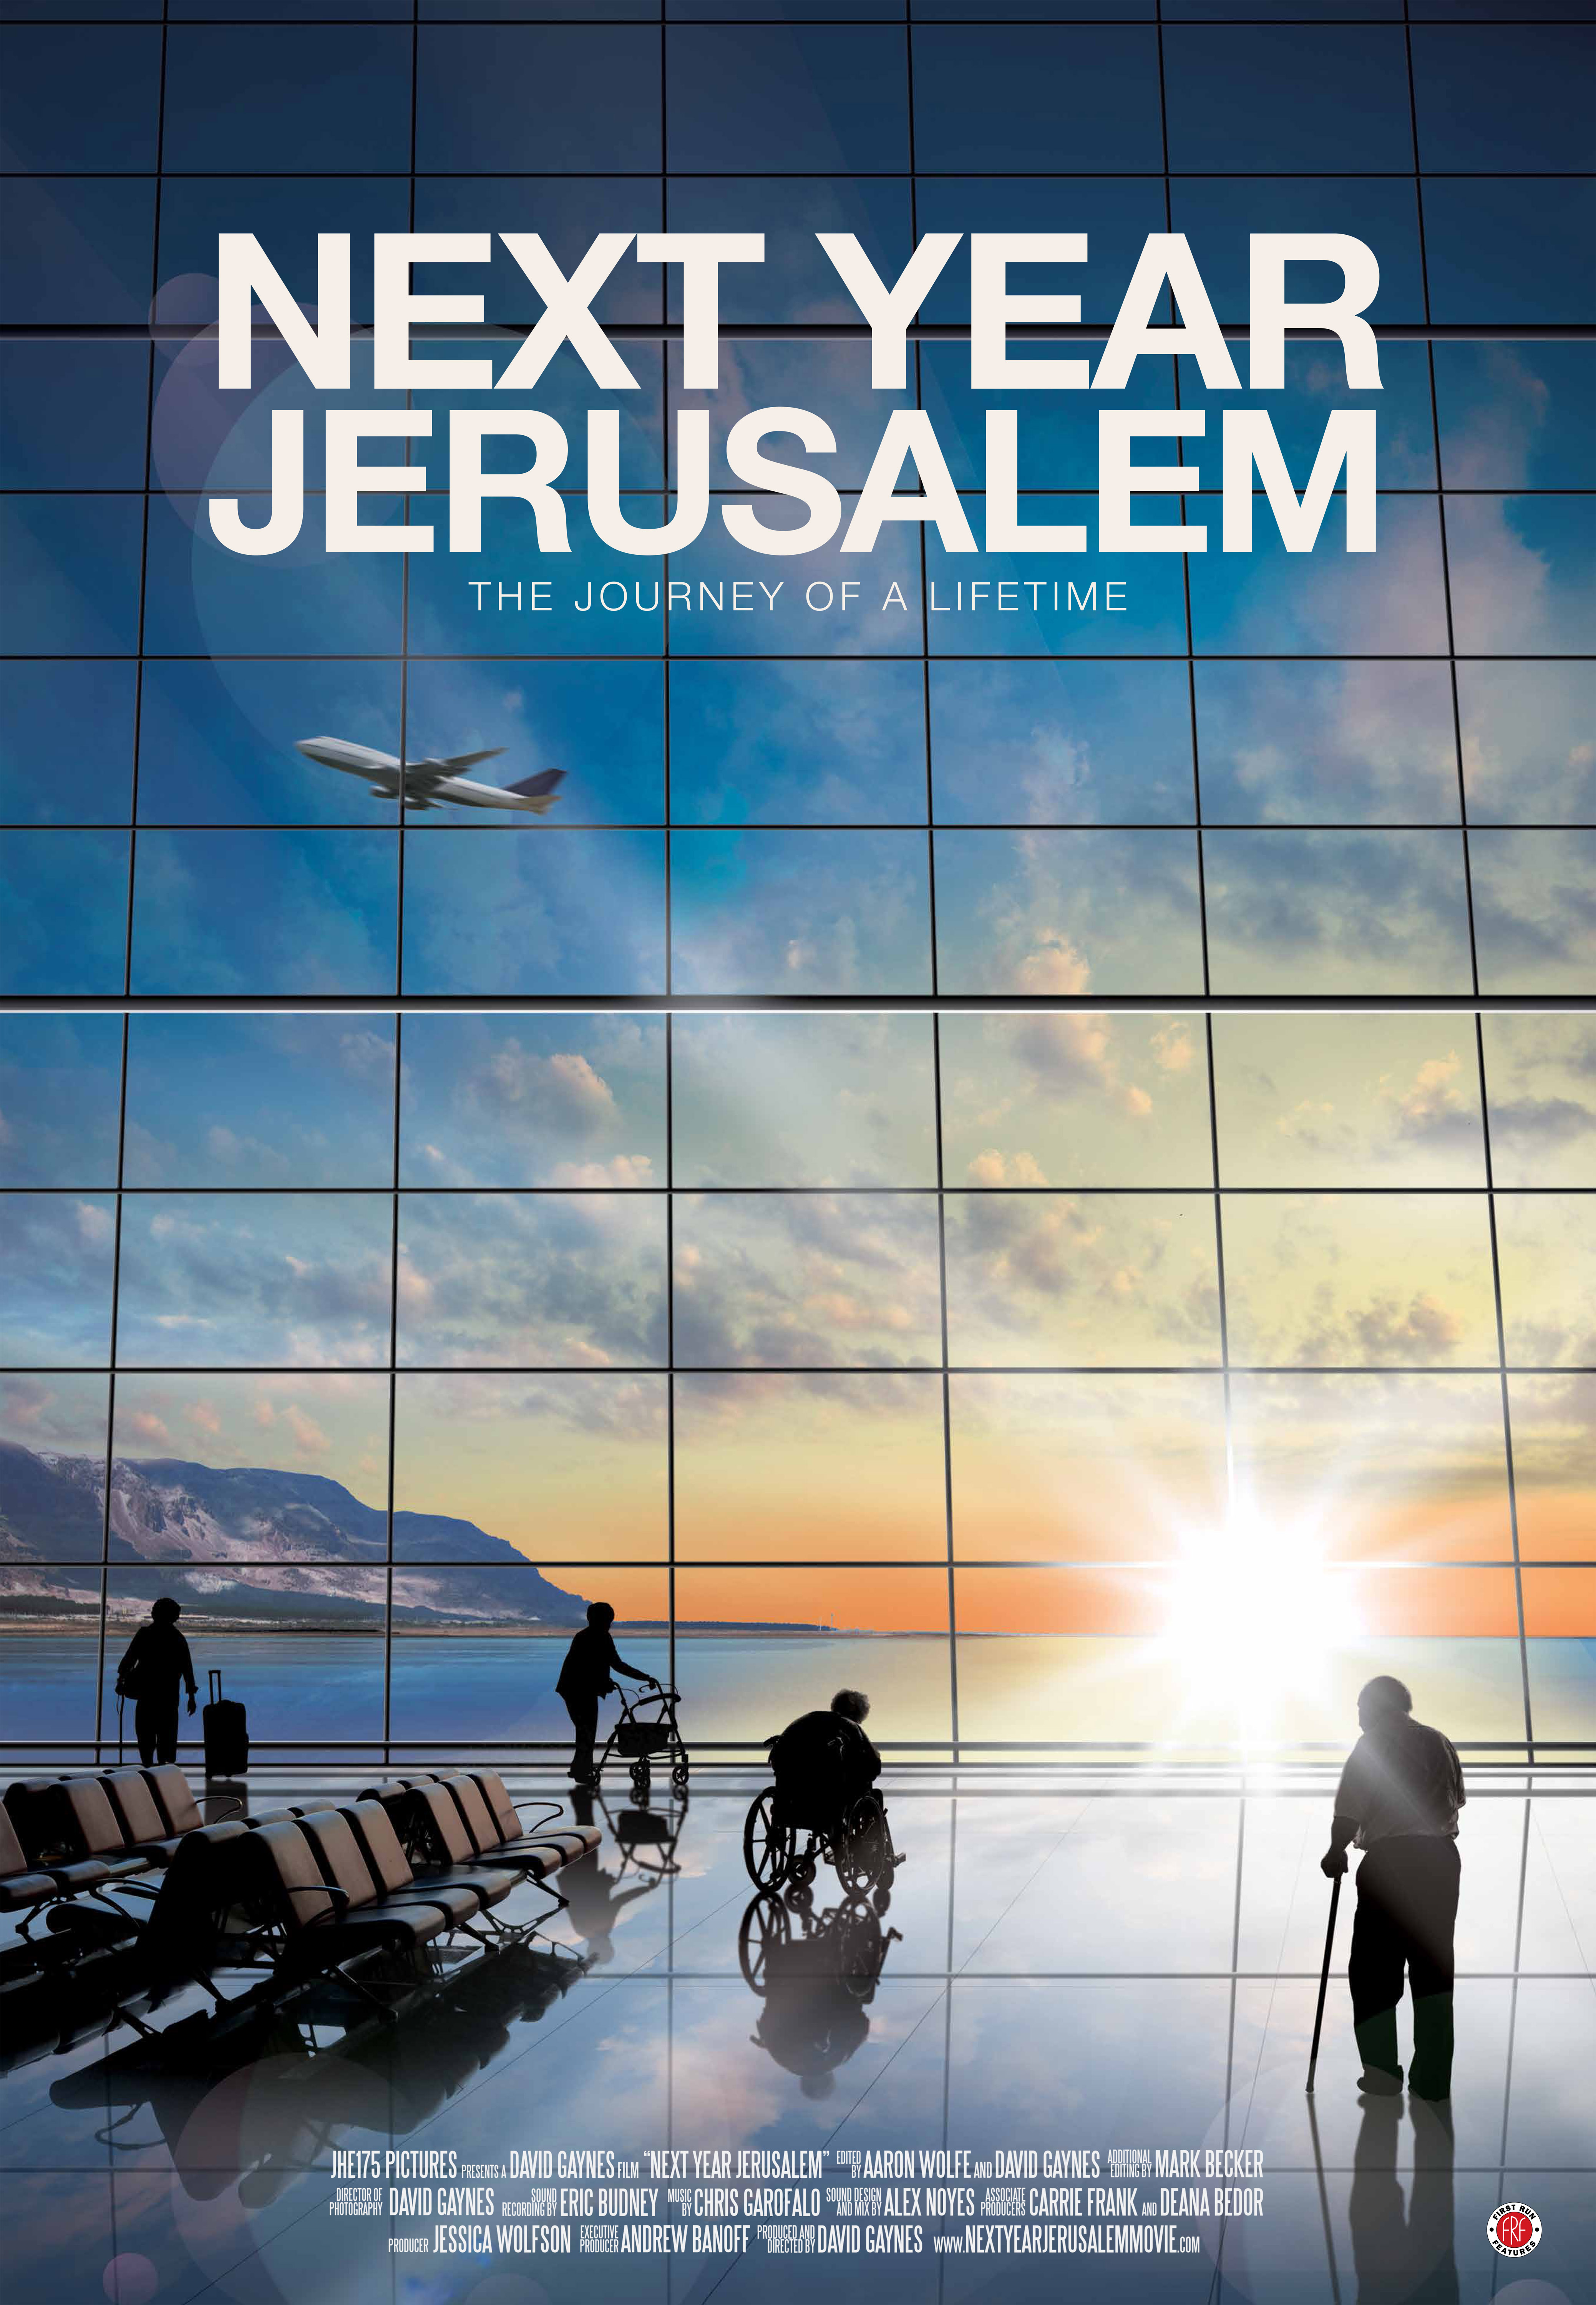 Next Year Jerusalem: The Journey of a Lifetime.